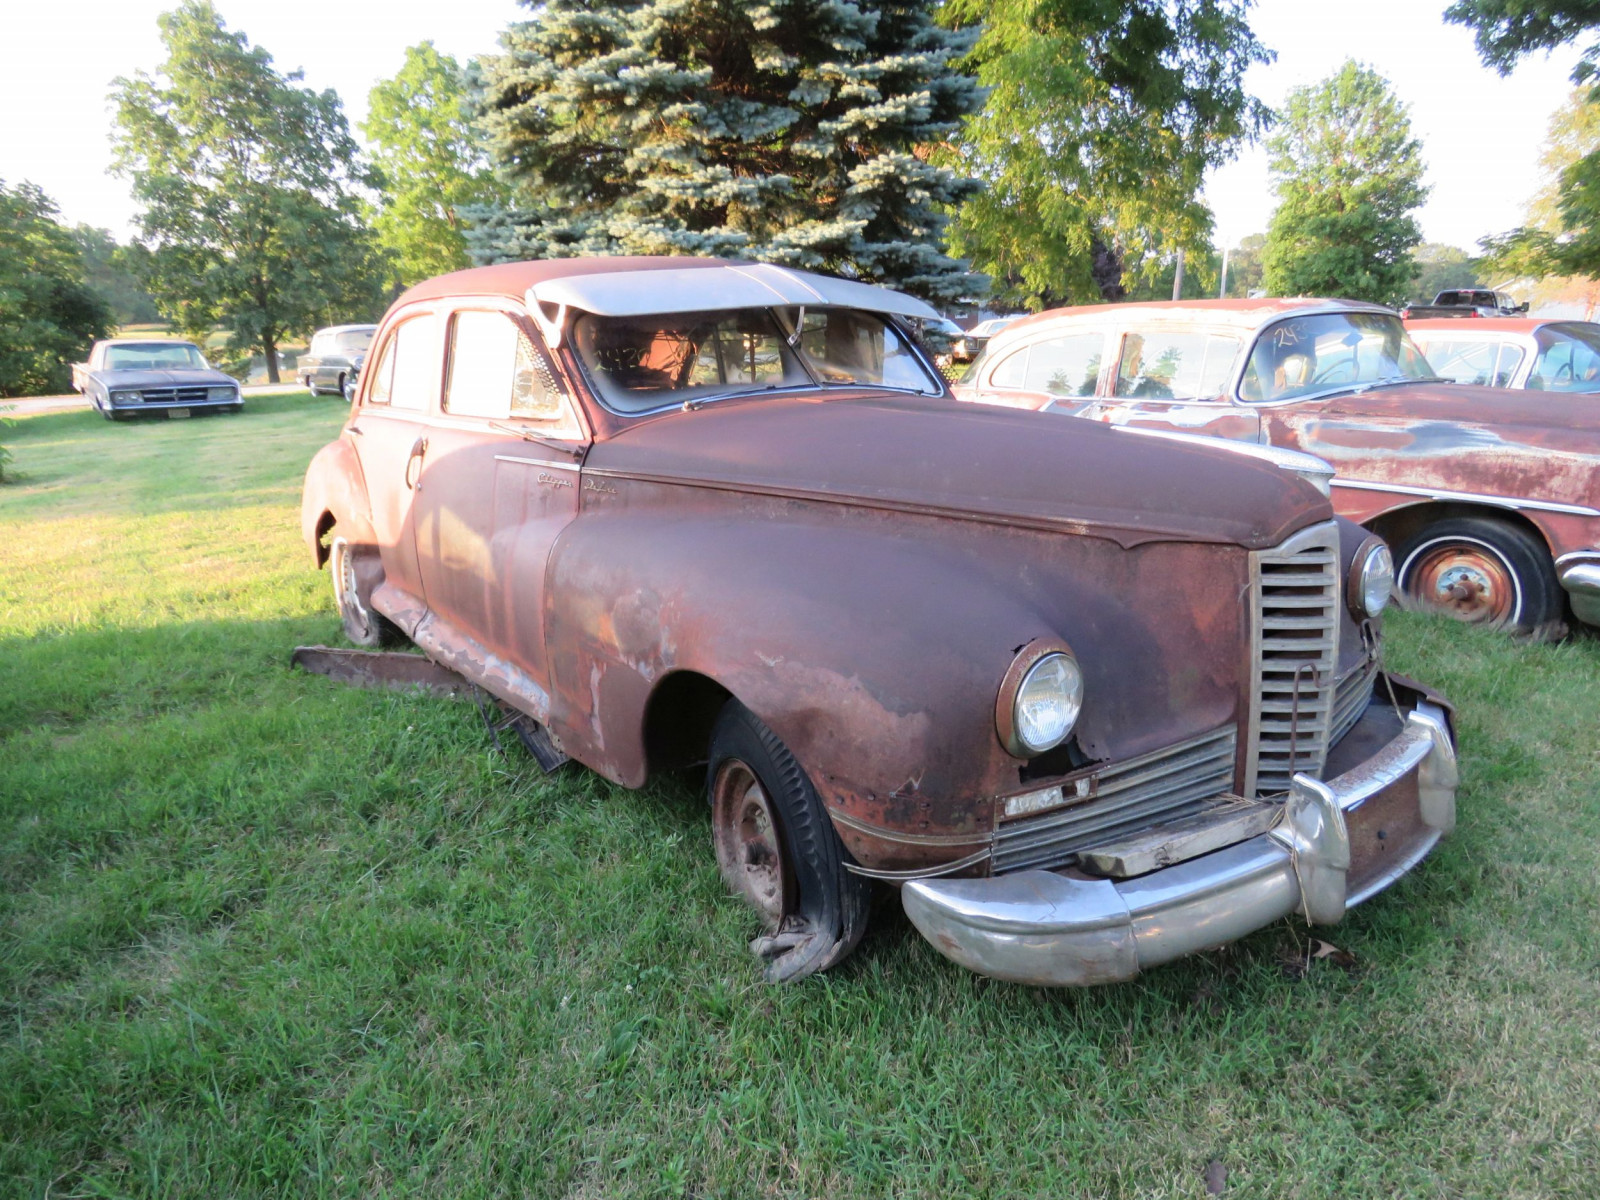 1948 Packard Sedan for parts - Image 1